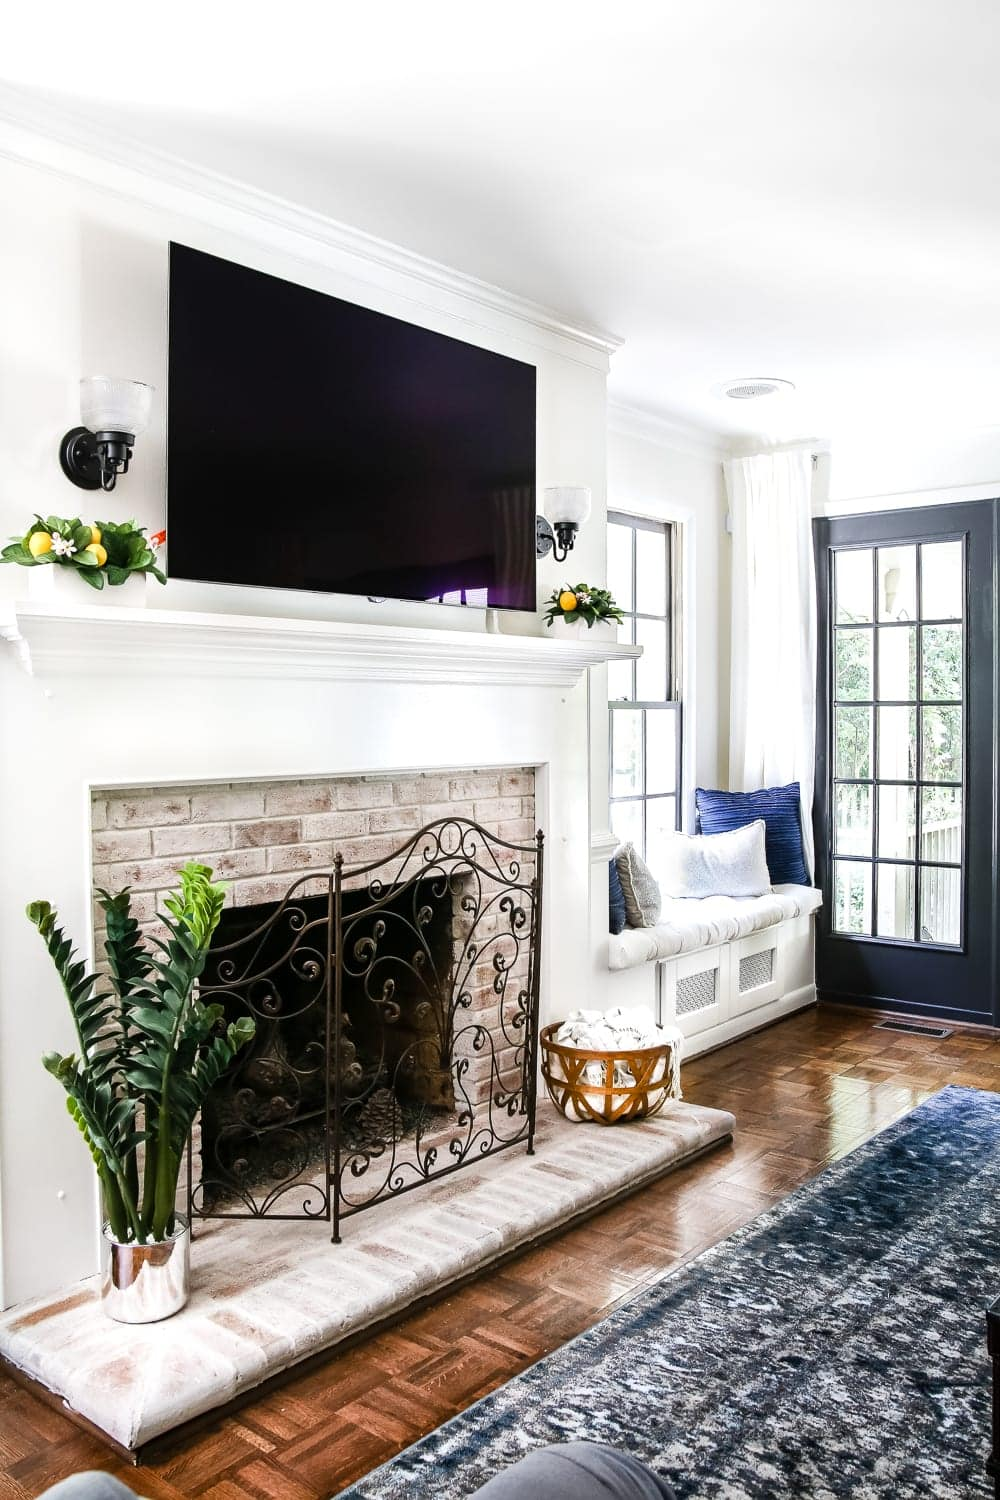 Delightful DIY Lime Washed Brick Fireplace | Blesserhouse.com   A Dirty And Tired  Orange Brick